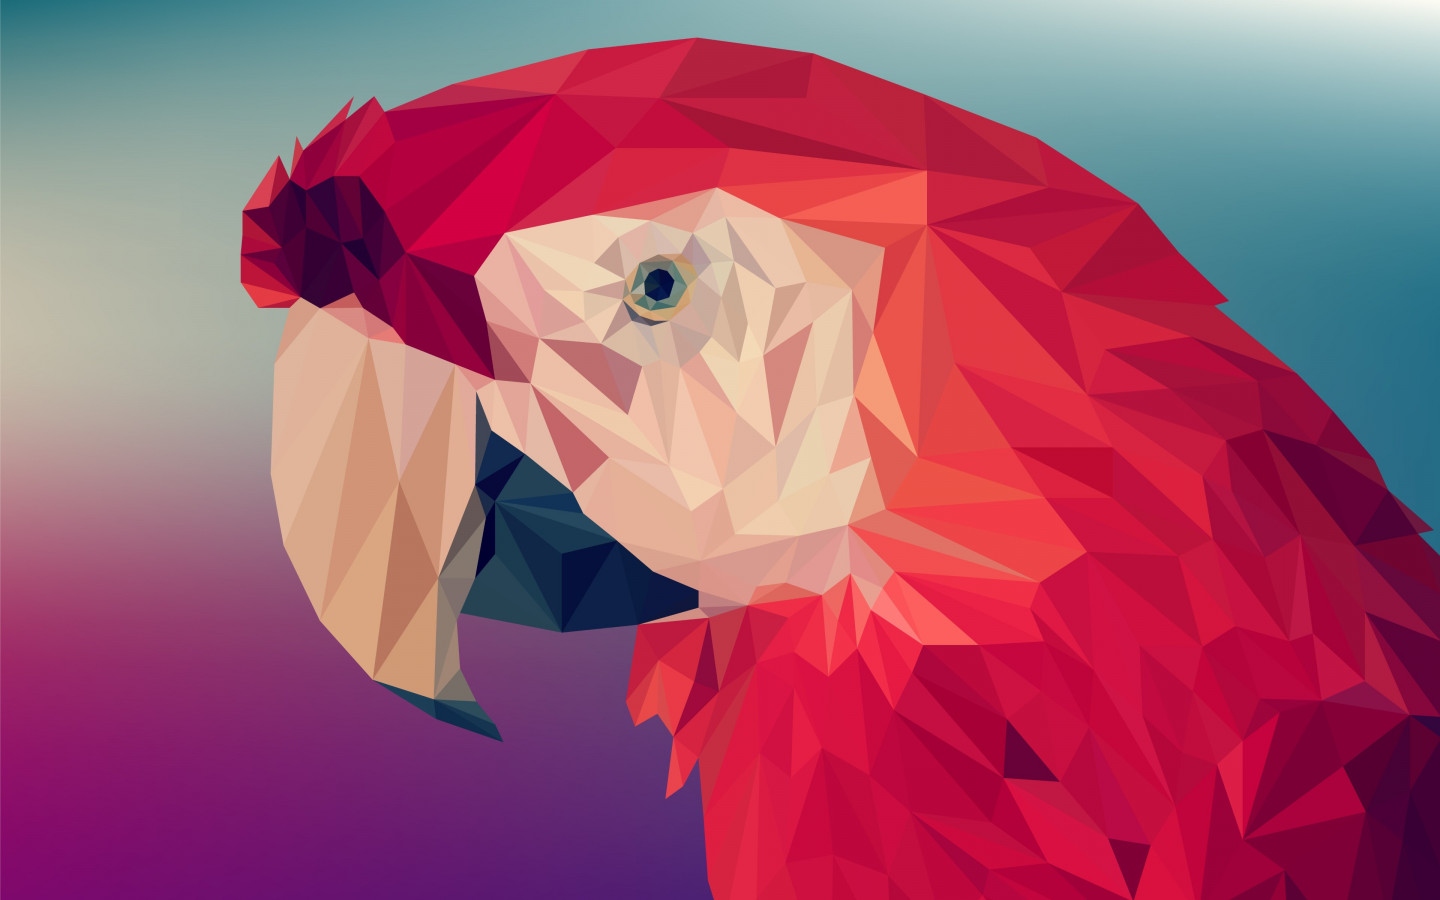 Low poly art: Red parrot wallpaper 1440x900